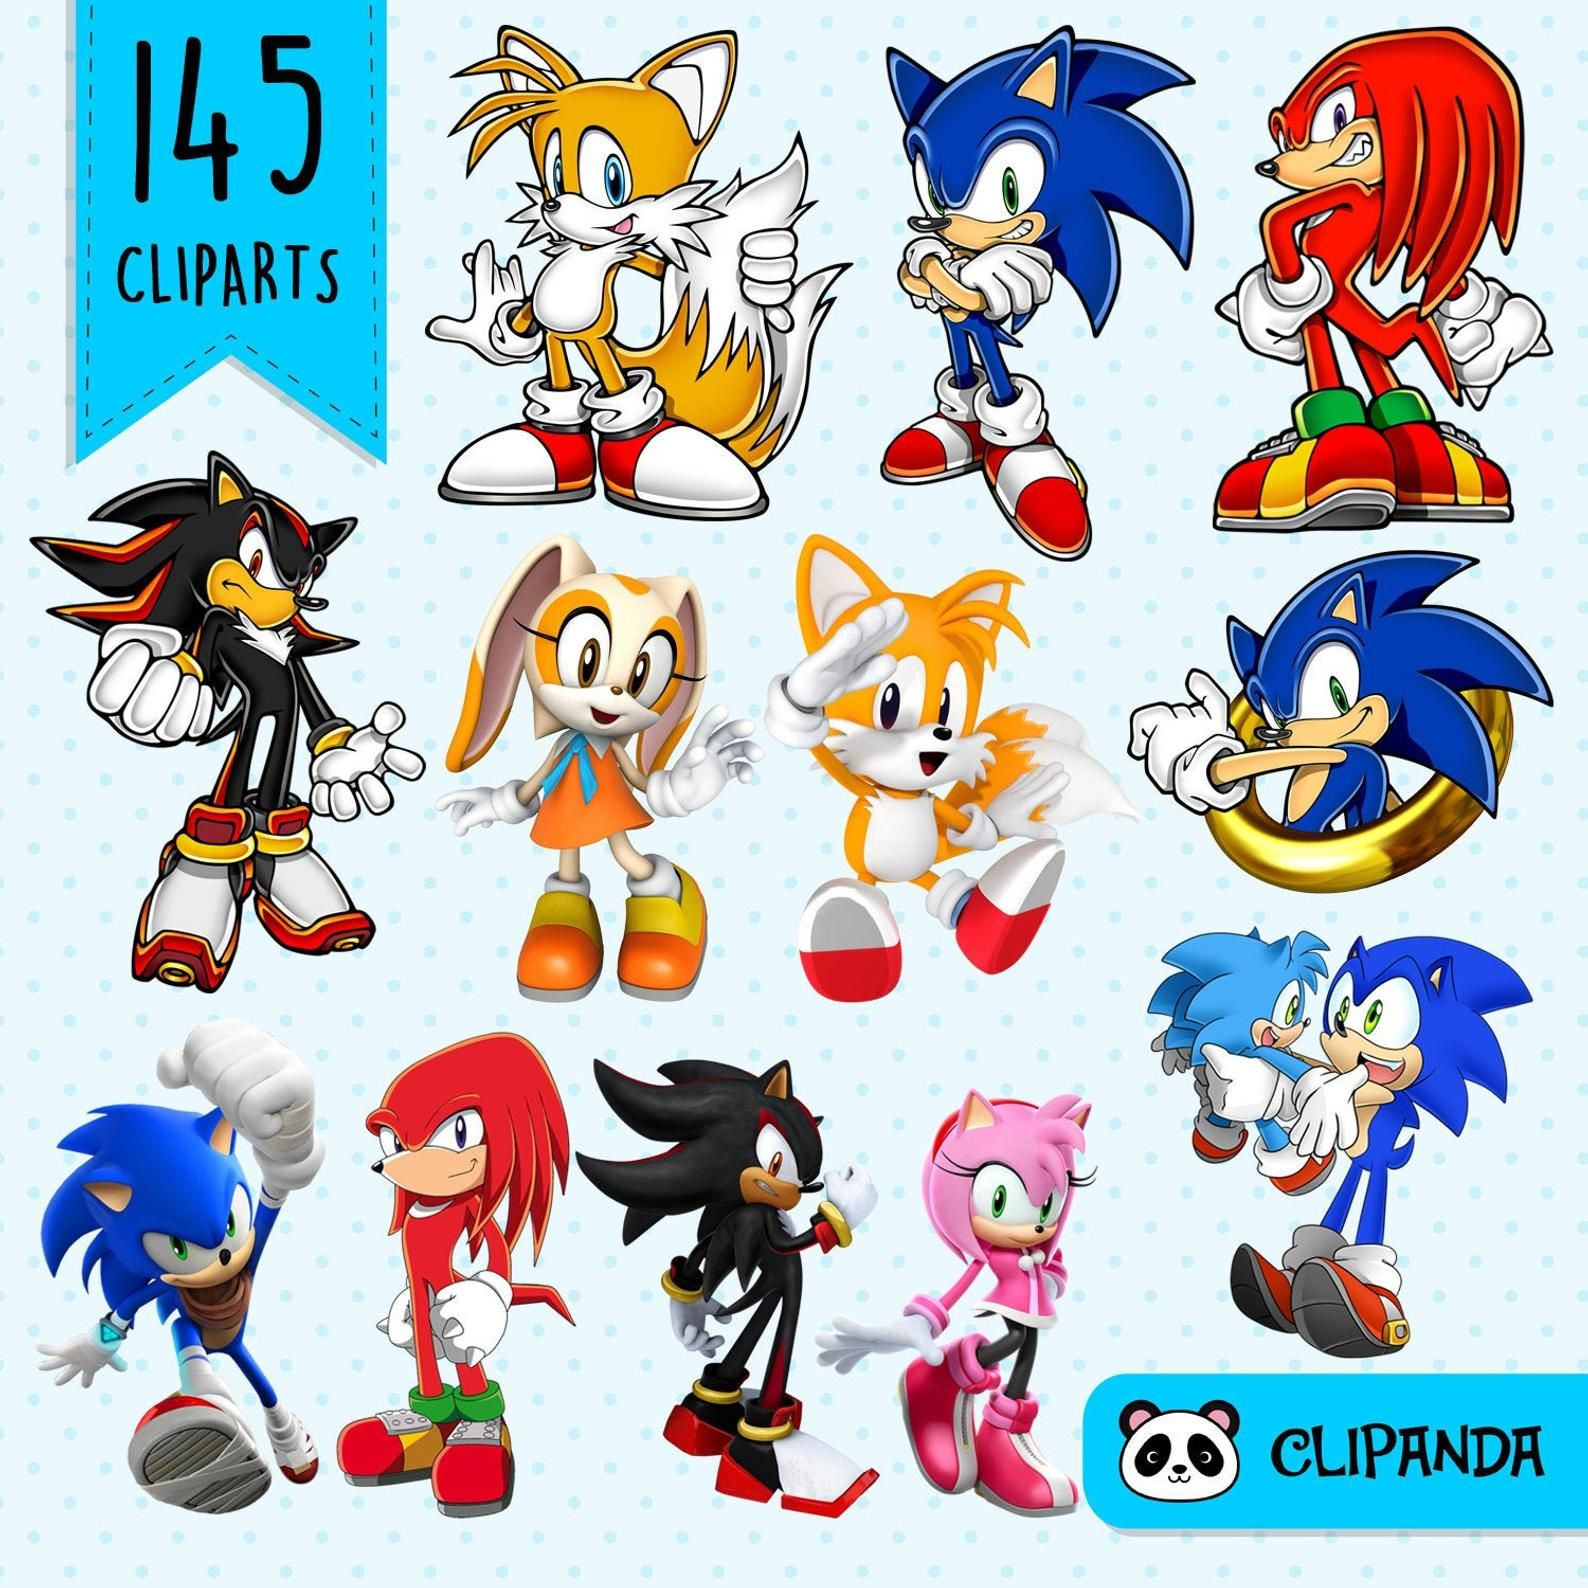 Sonic The Hedgehog Clipart Png Transparent Background Etsy In 2020 Sonic Birthday Parties Sonic Birthday Sonic The Hedgehog